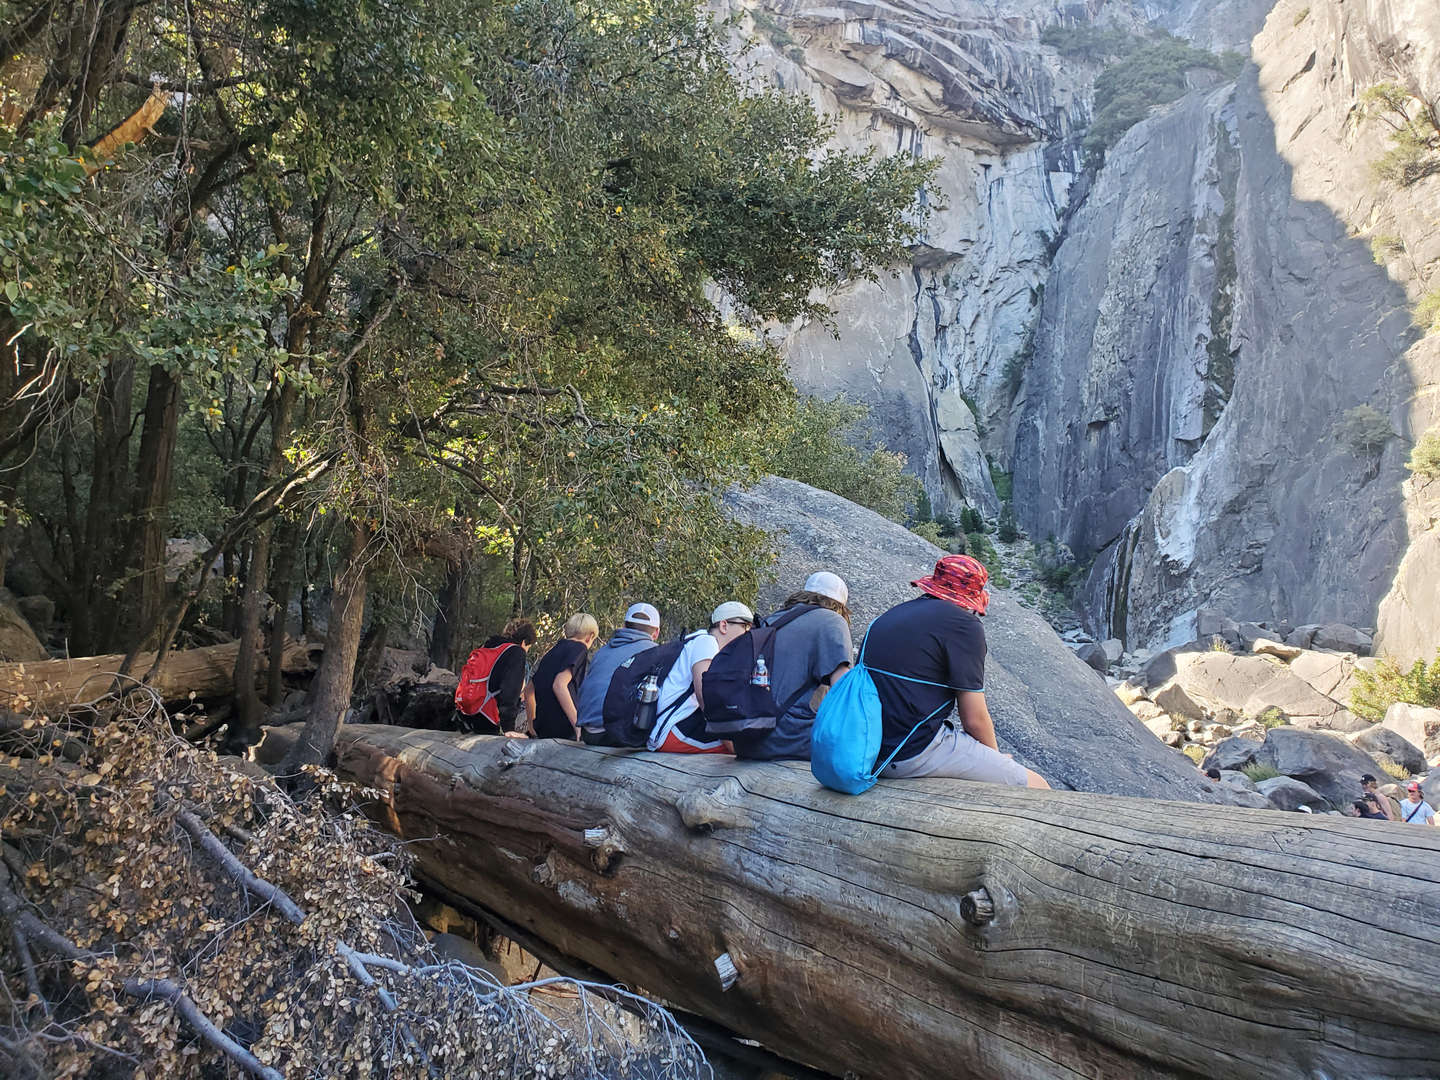 Students sitting on a log surrounded by mountains and nature.